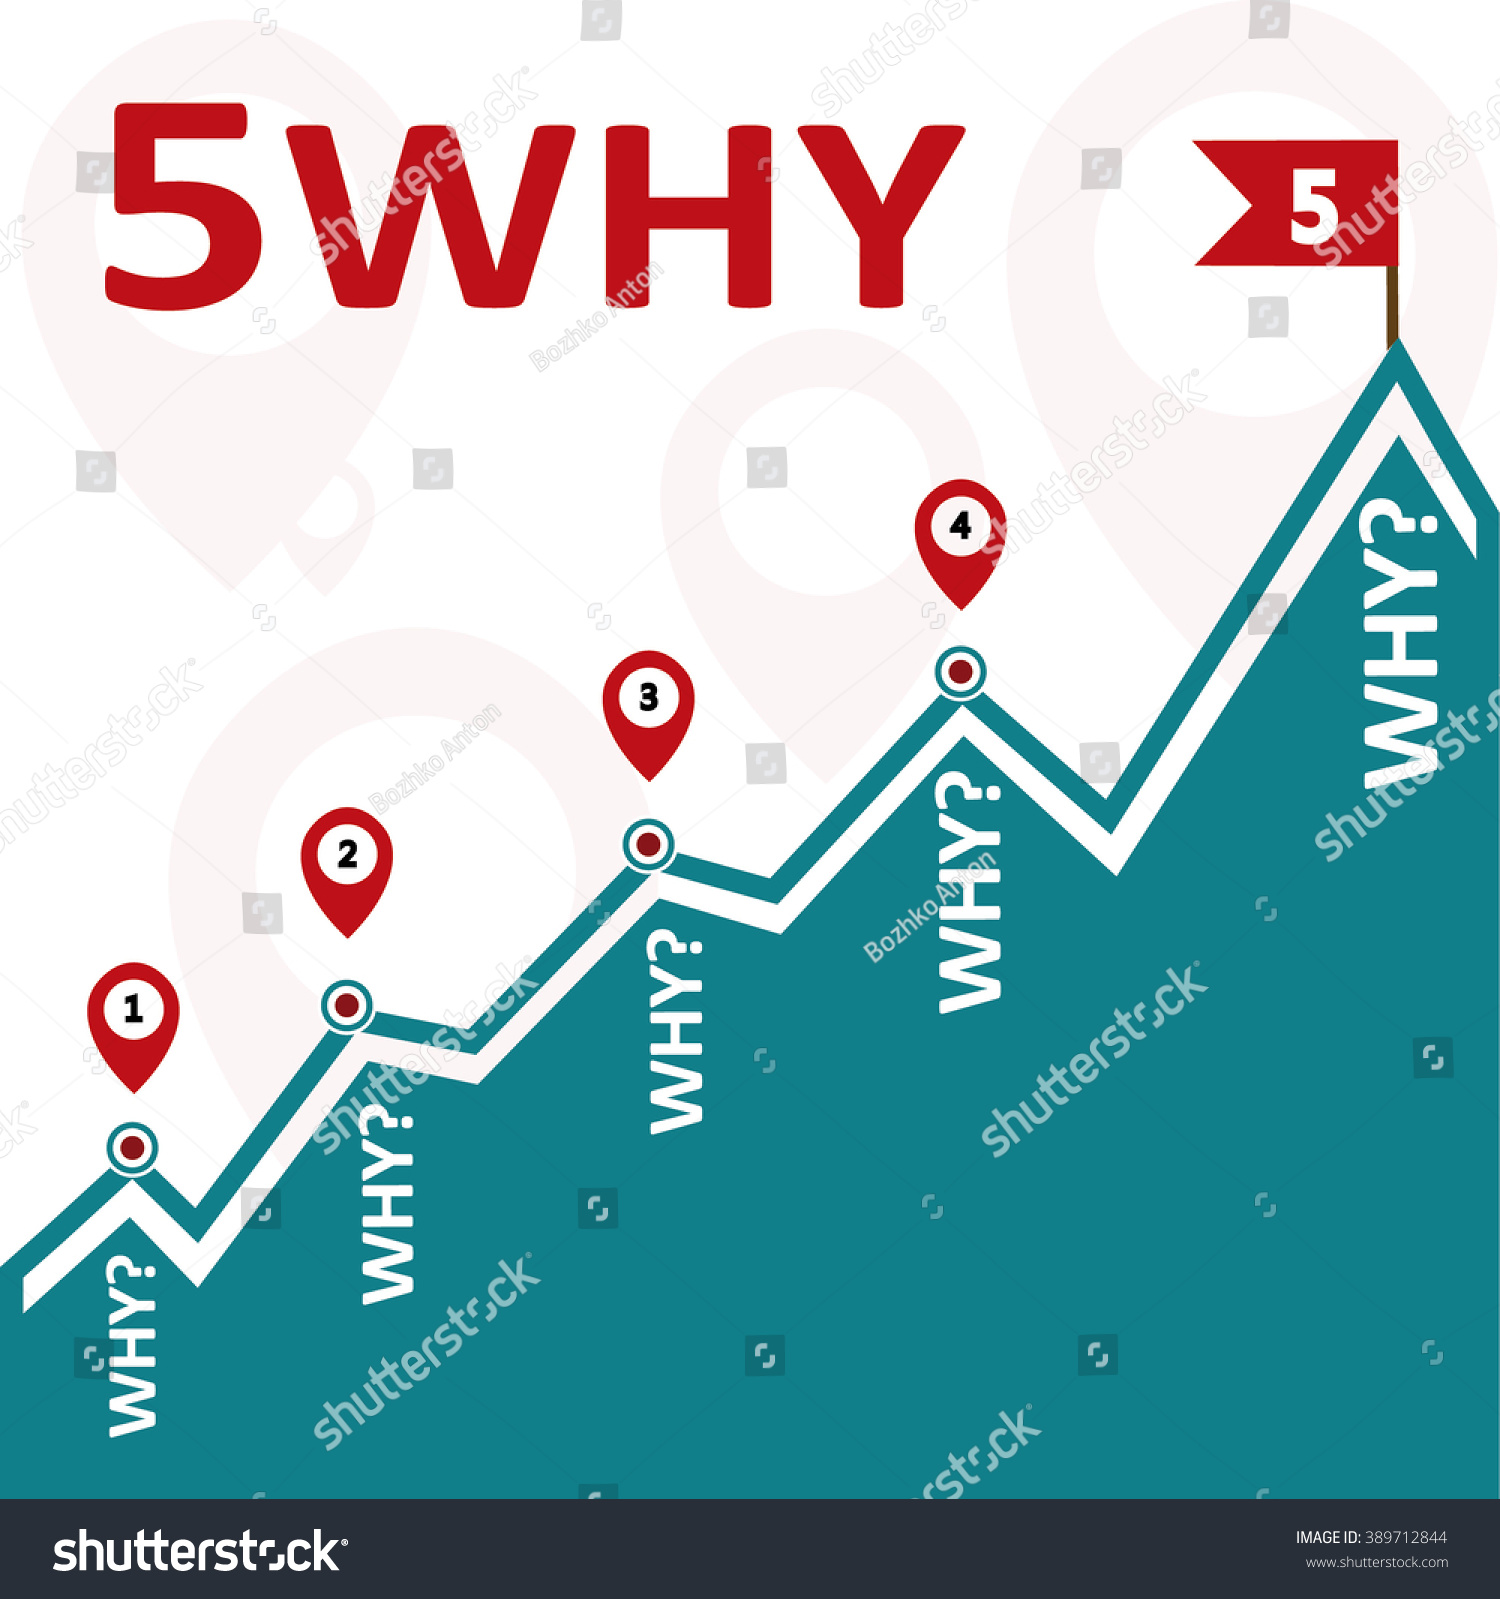 5 Five Why Root Cause Failure Stock Vector (Royalty Free) 389712844 ...